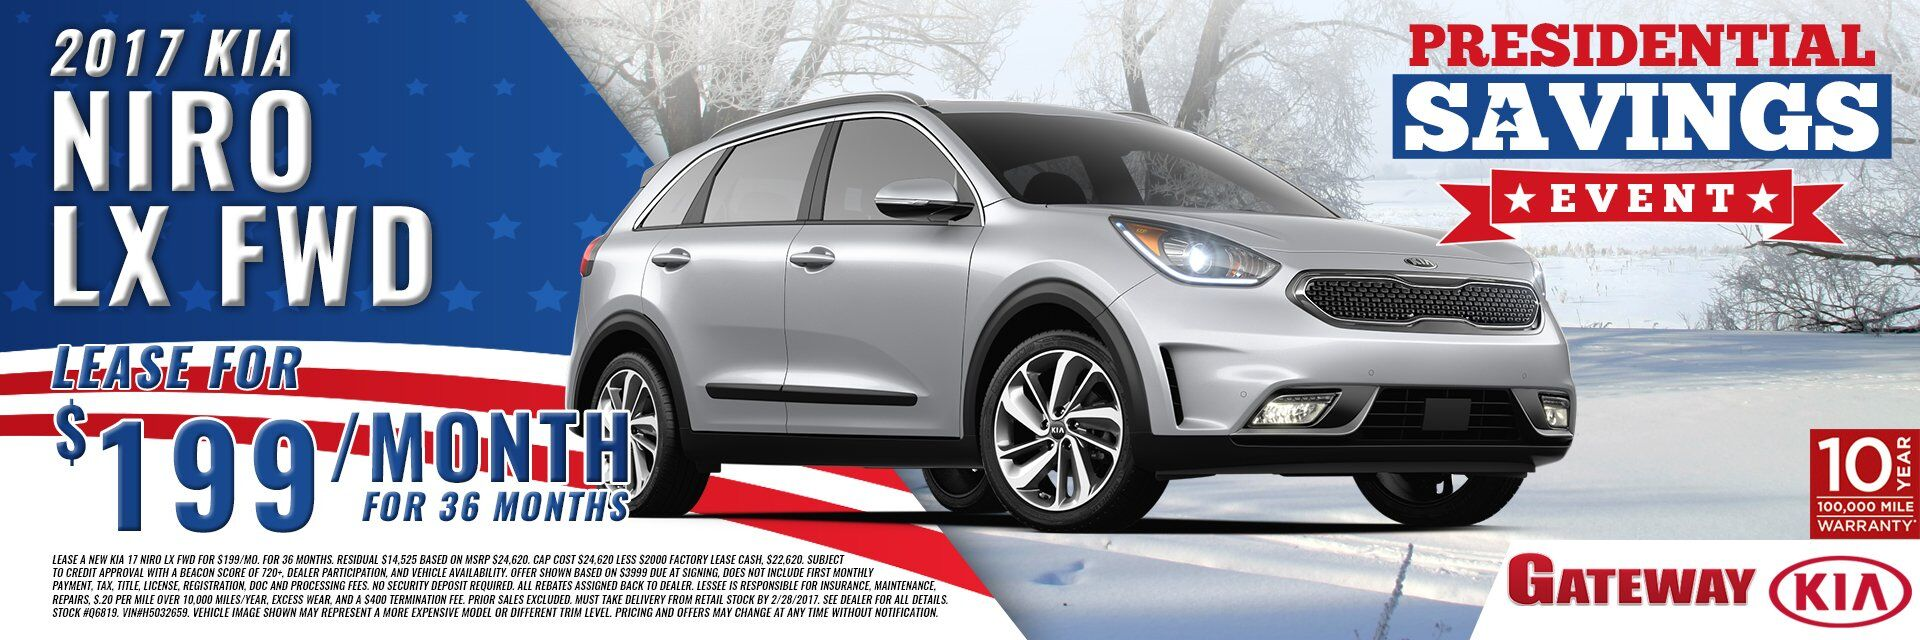 2017 KIA Niro for $199 per mo